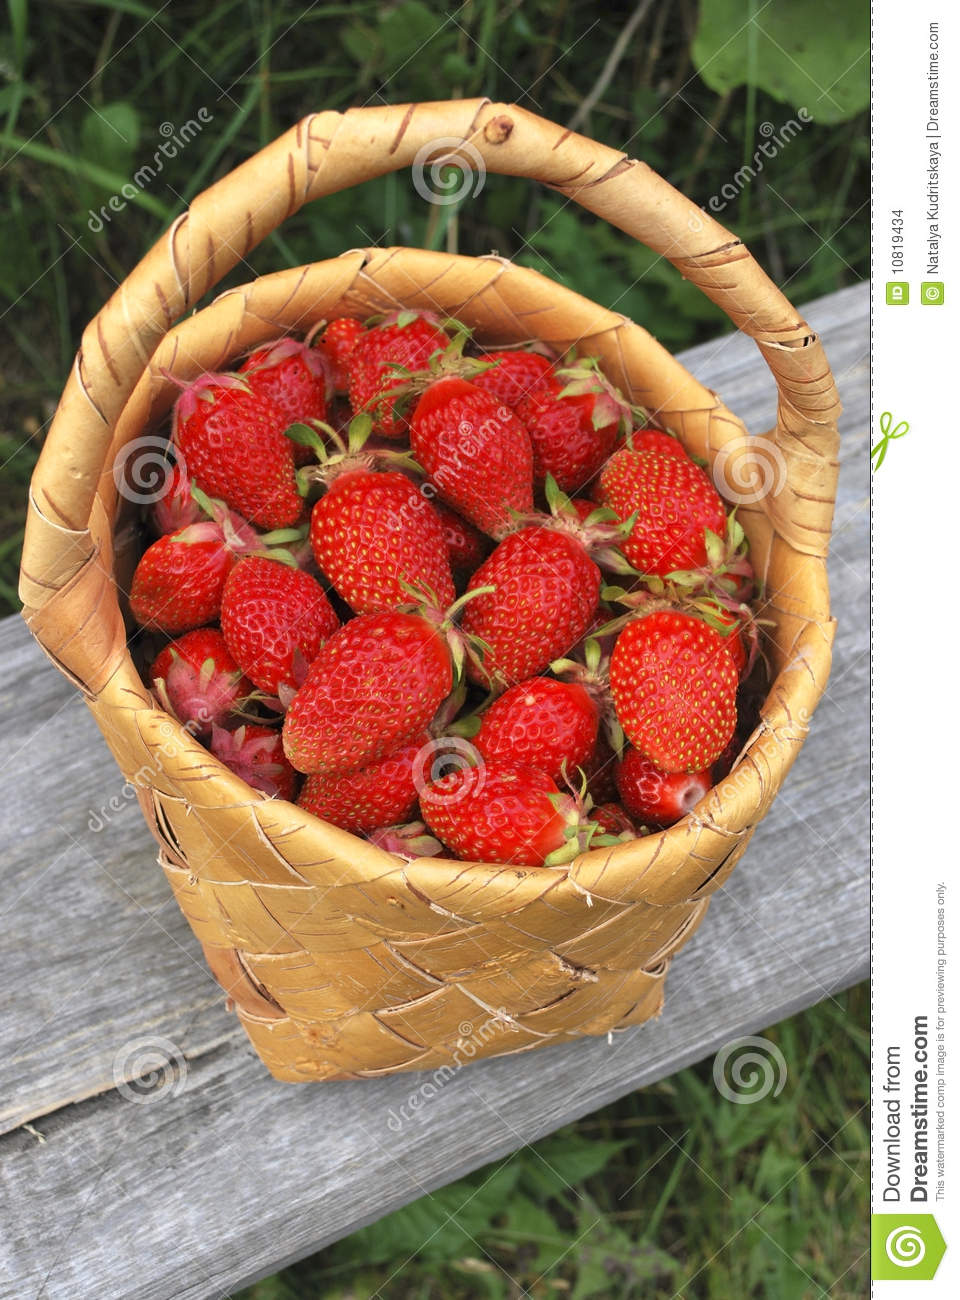 Basket of the strawberries stock photo. Image of ...